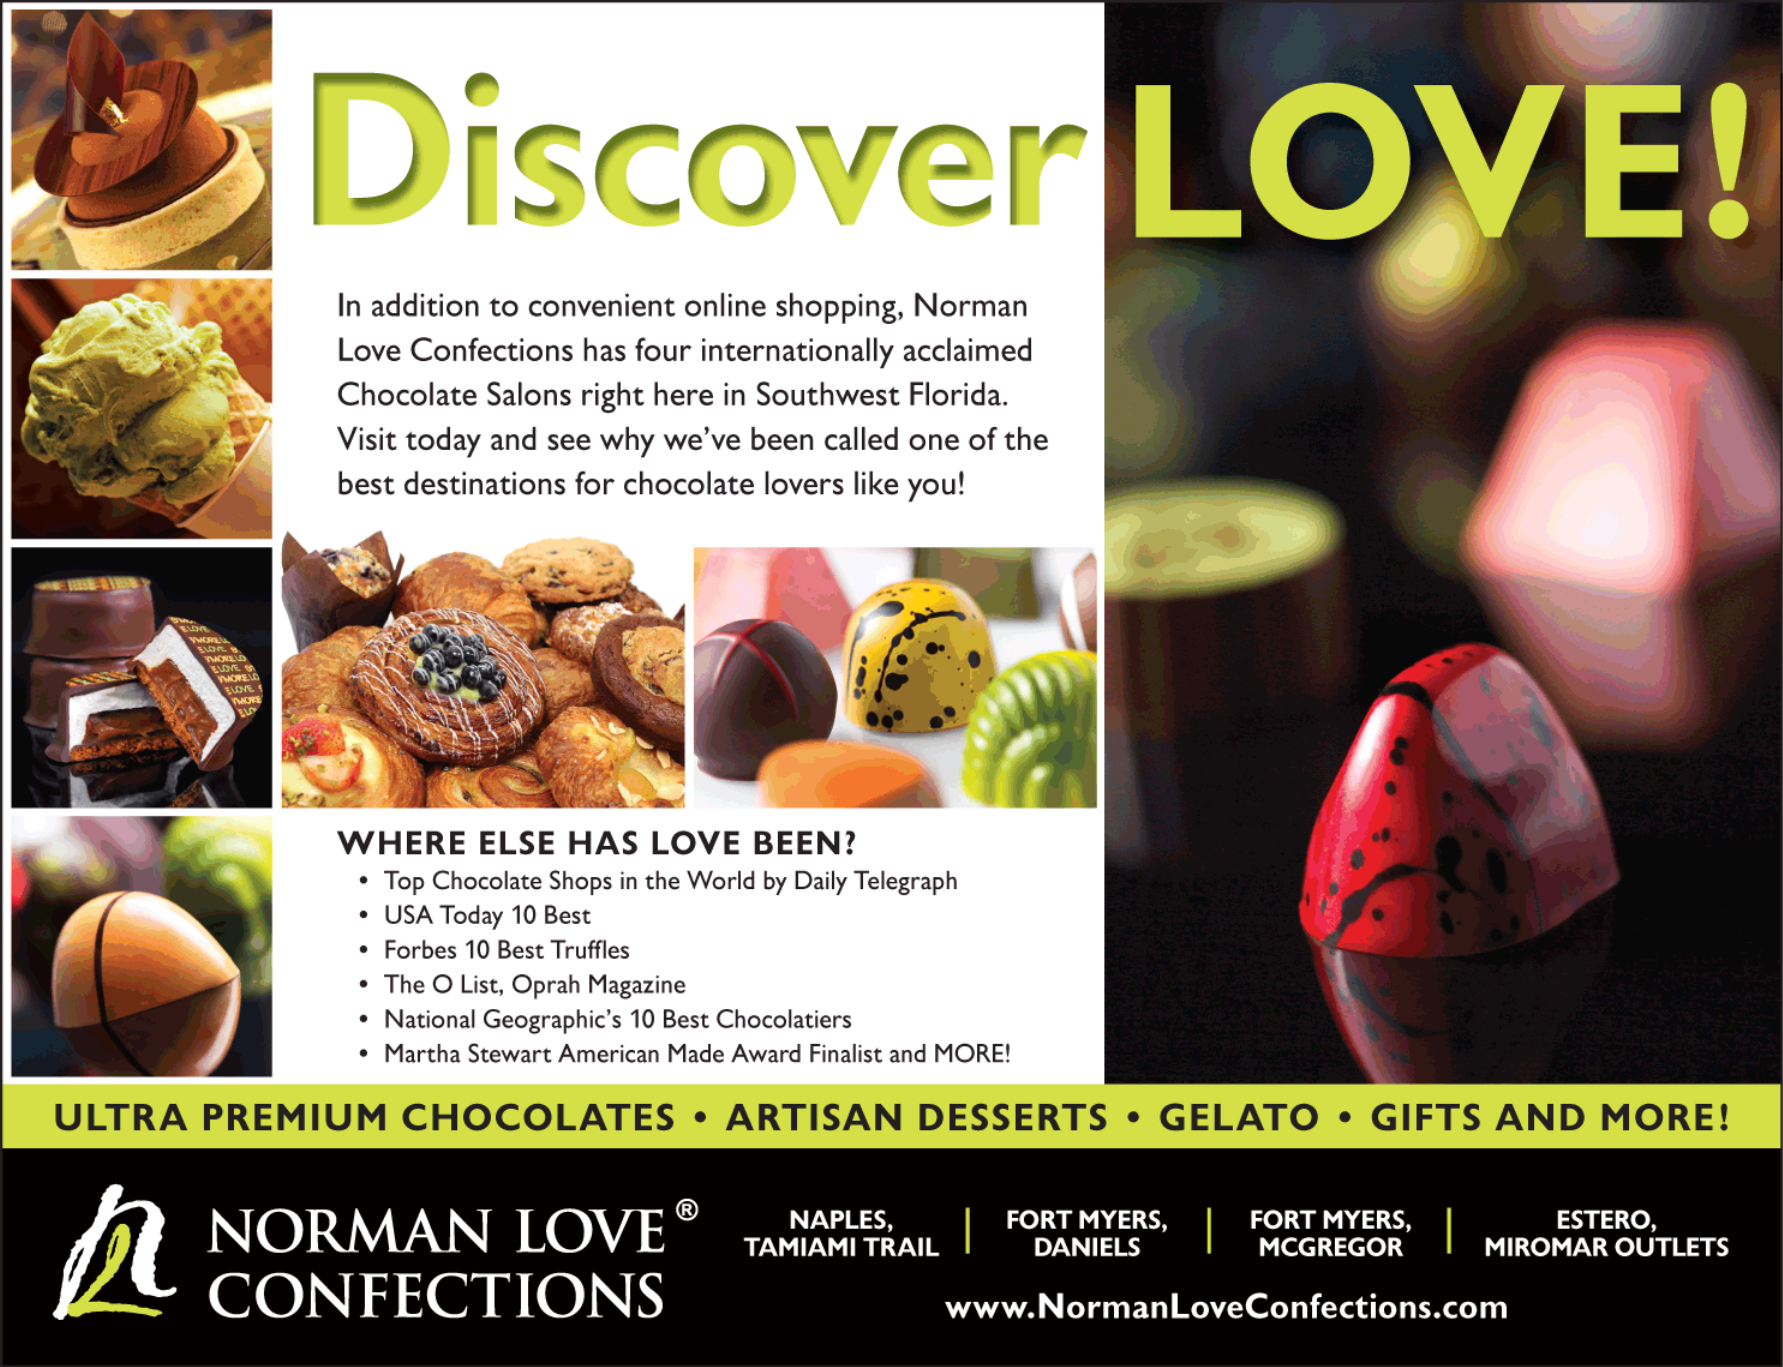 Norman Love Confections